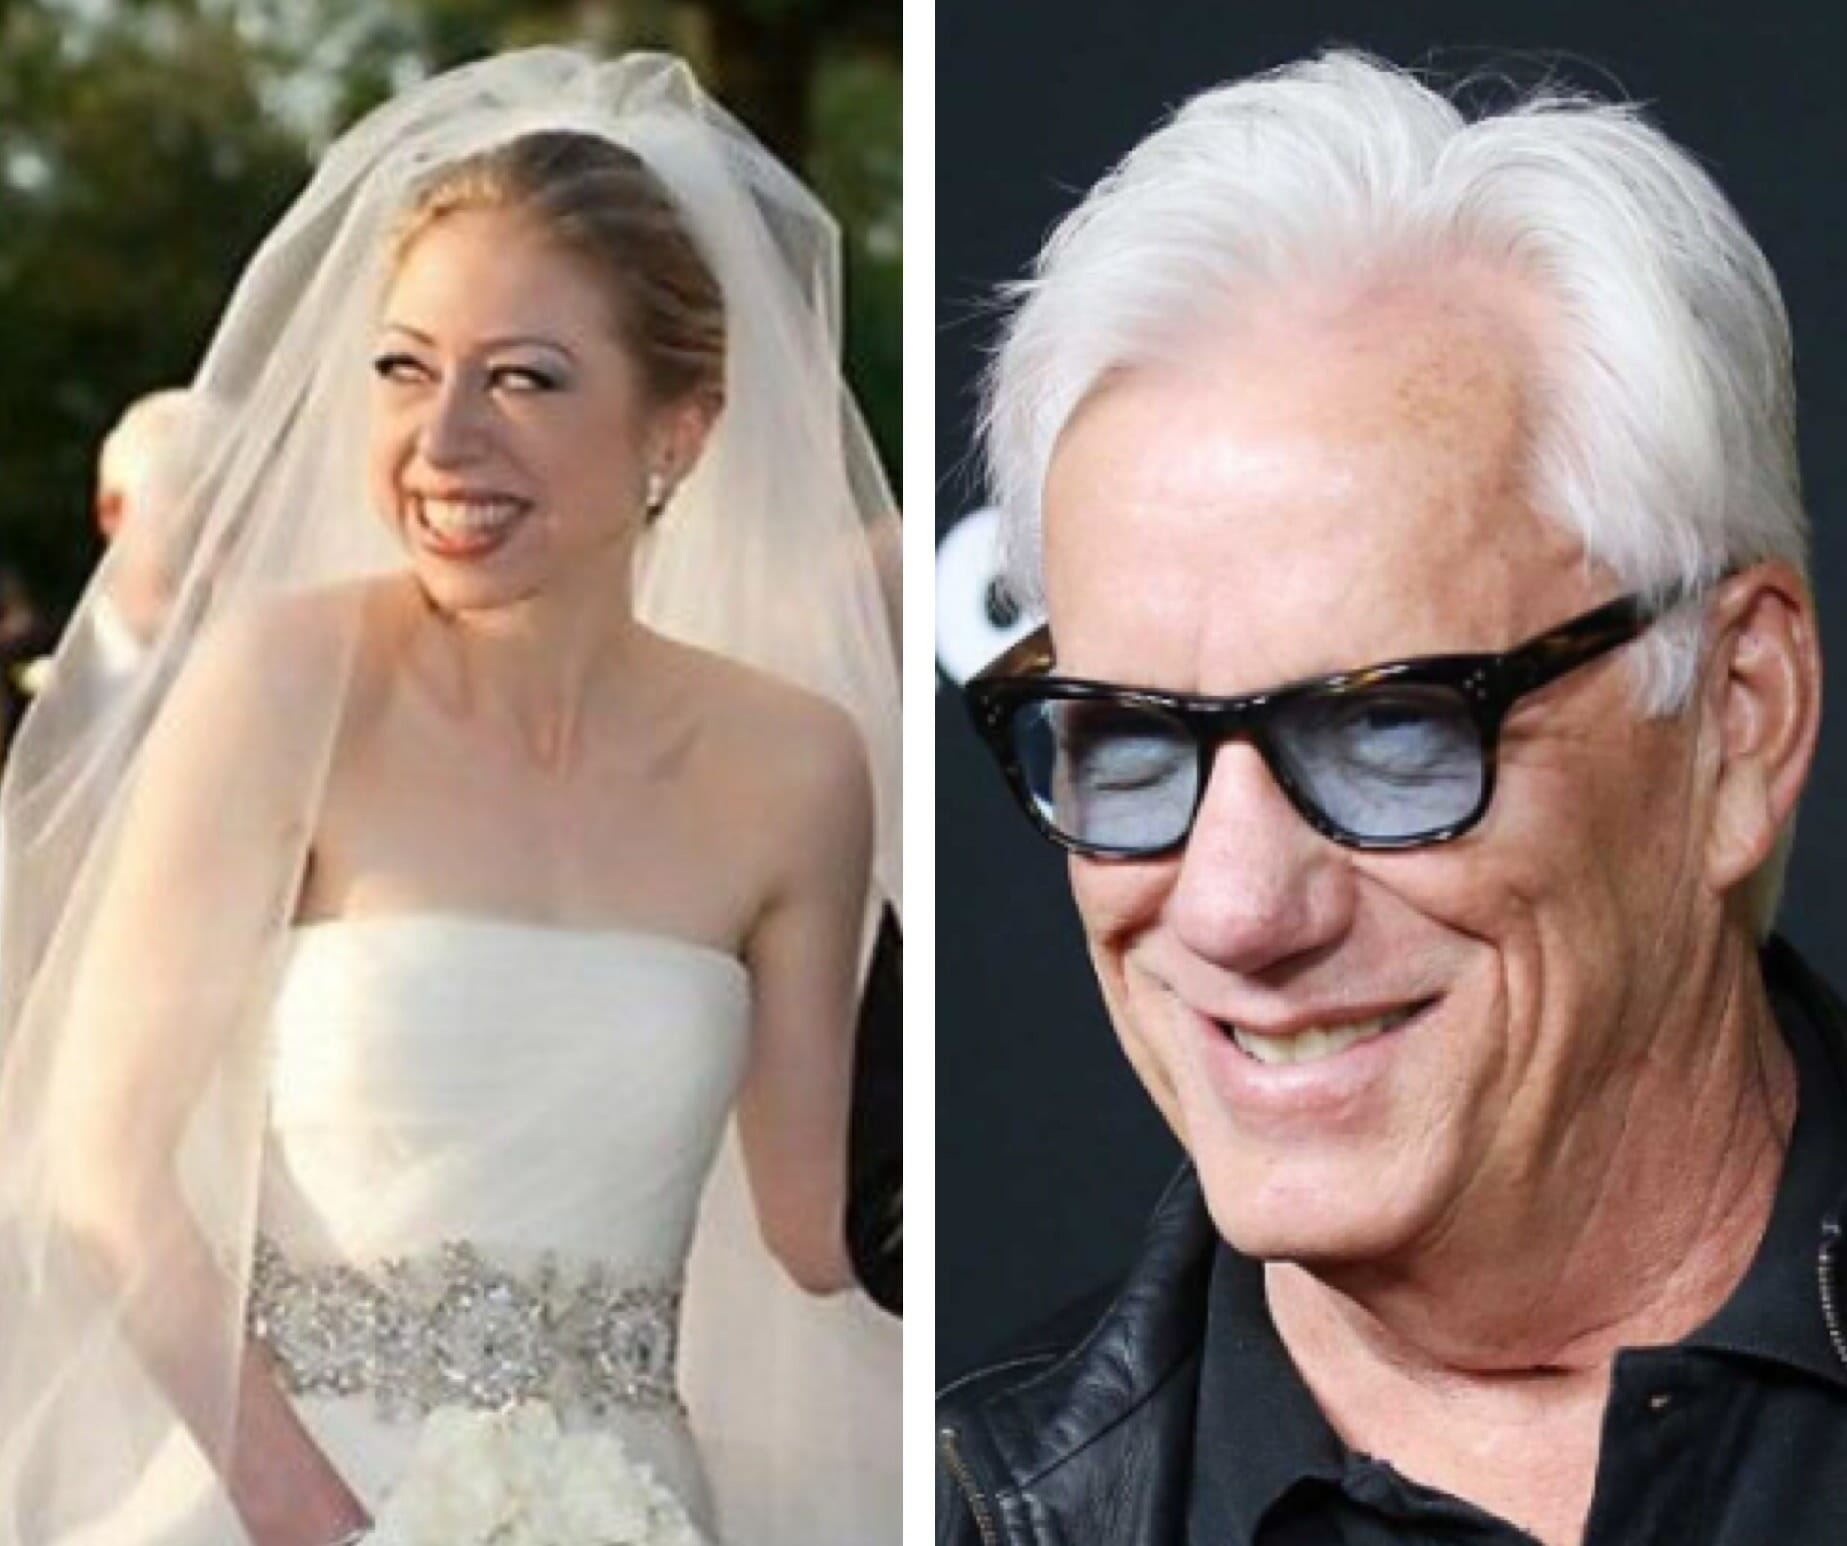 photo image James Woods Moves in With Kill Shot After Chelsea Clinton Lectures POTUS Trump on Haiti